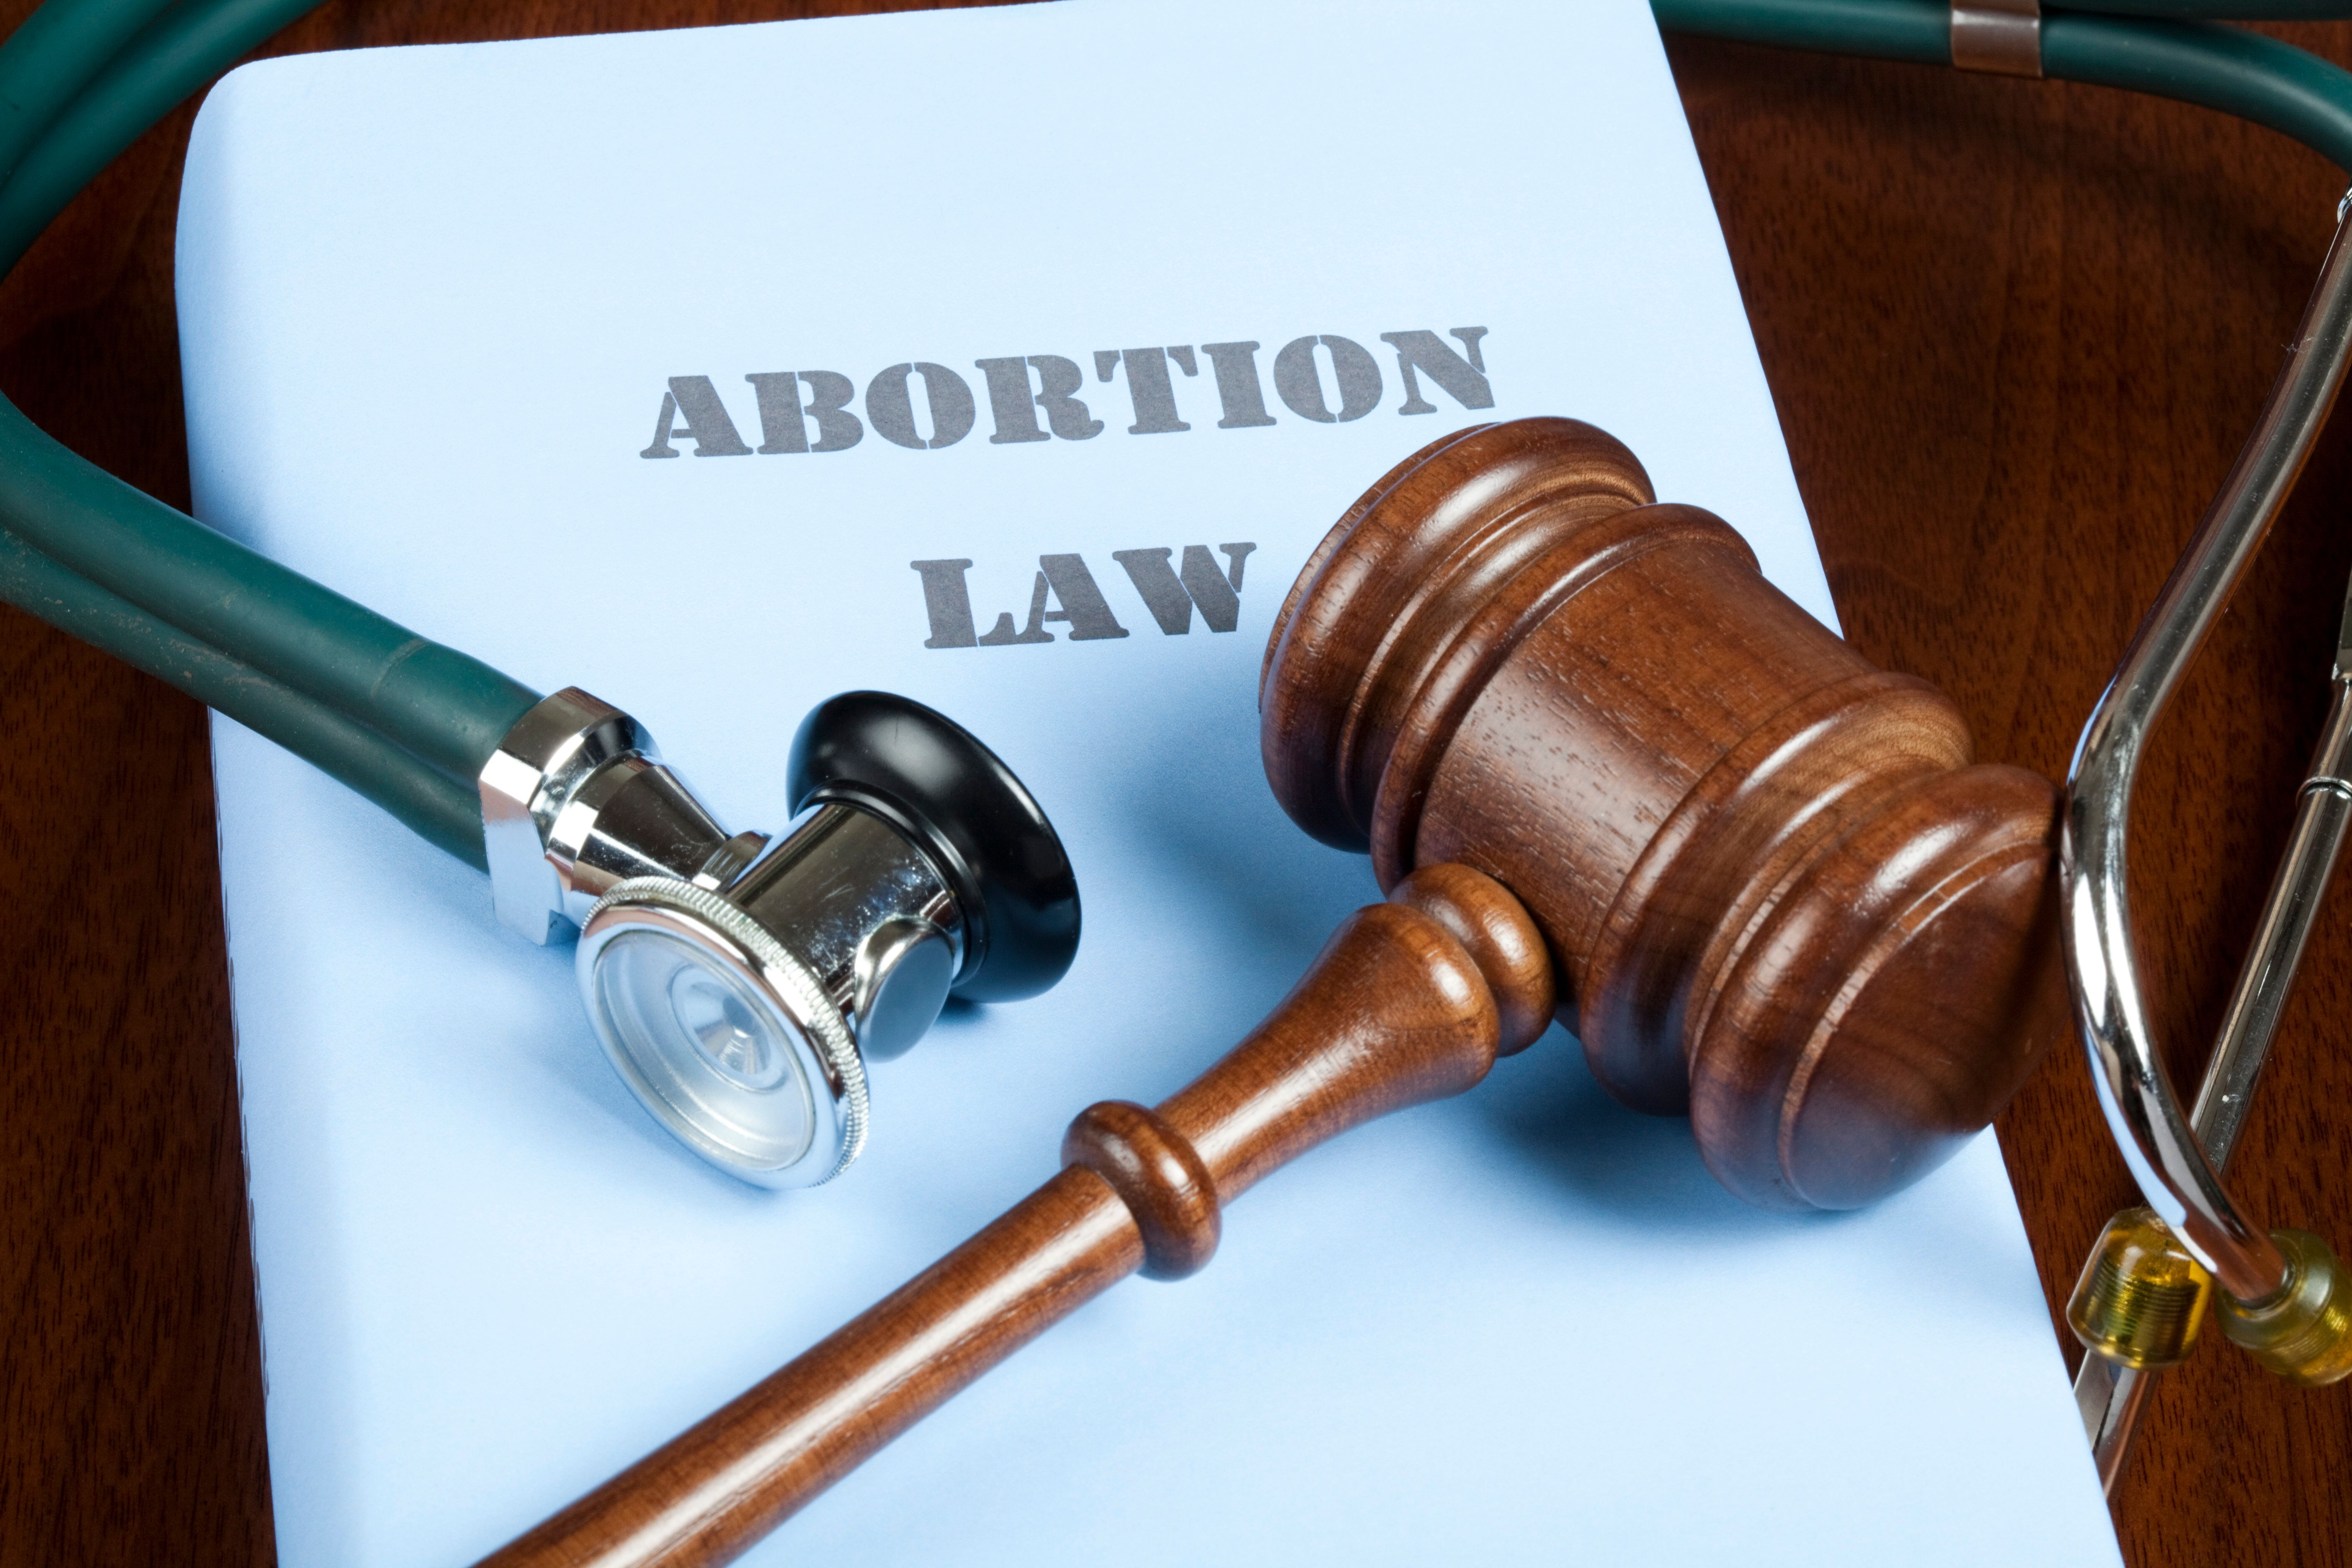 Gavel and stethoscope on Abortion law handbook.